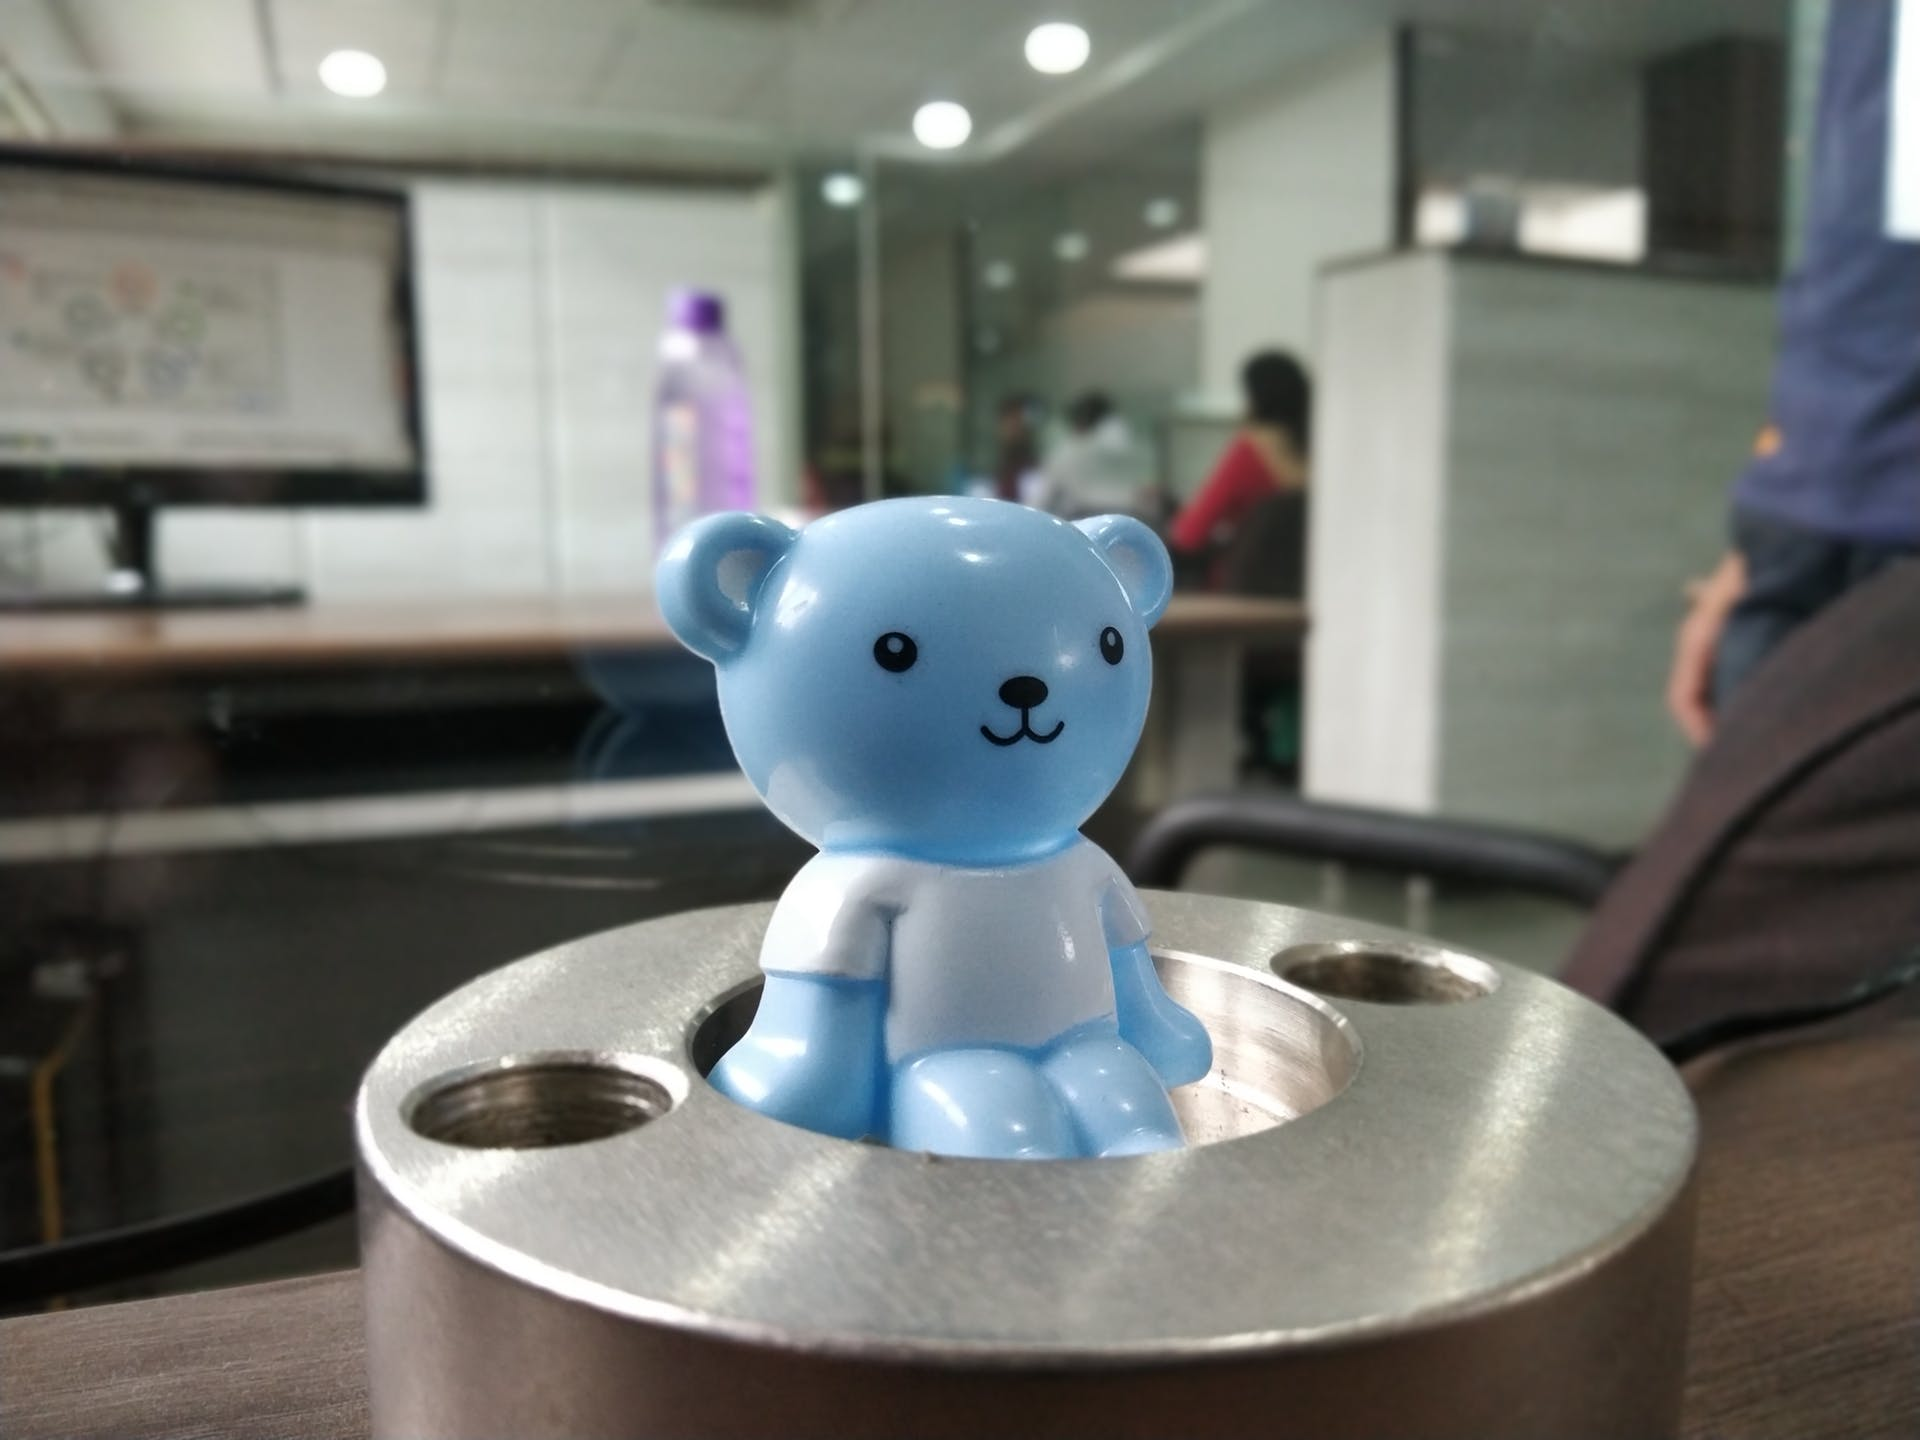 hd wallpaper pexels cartoon character office baby blue toy cute cool cool light